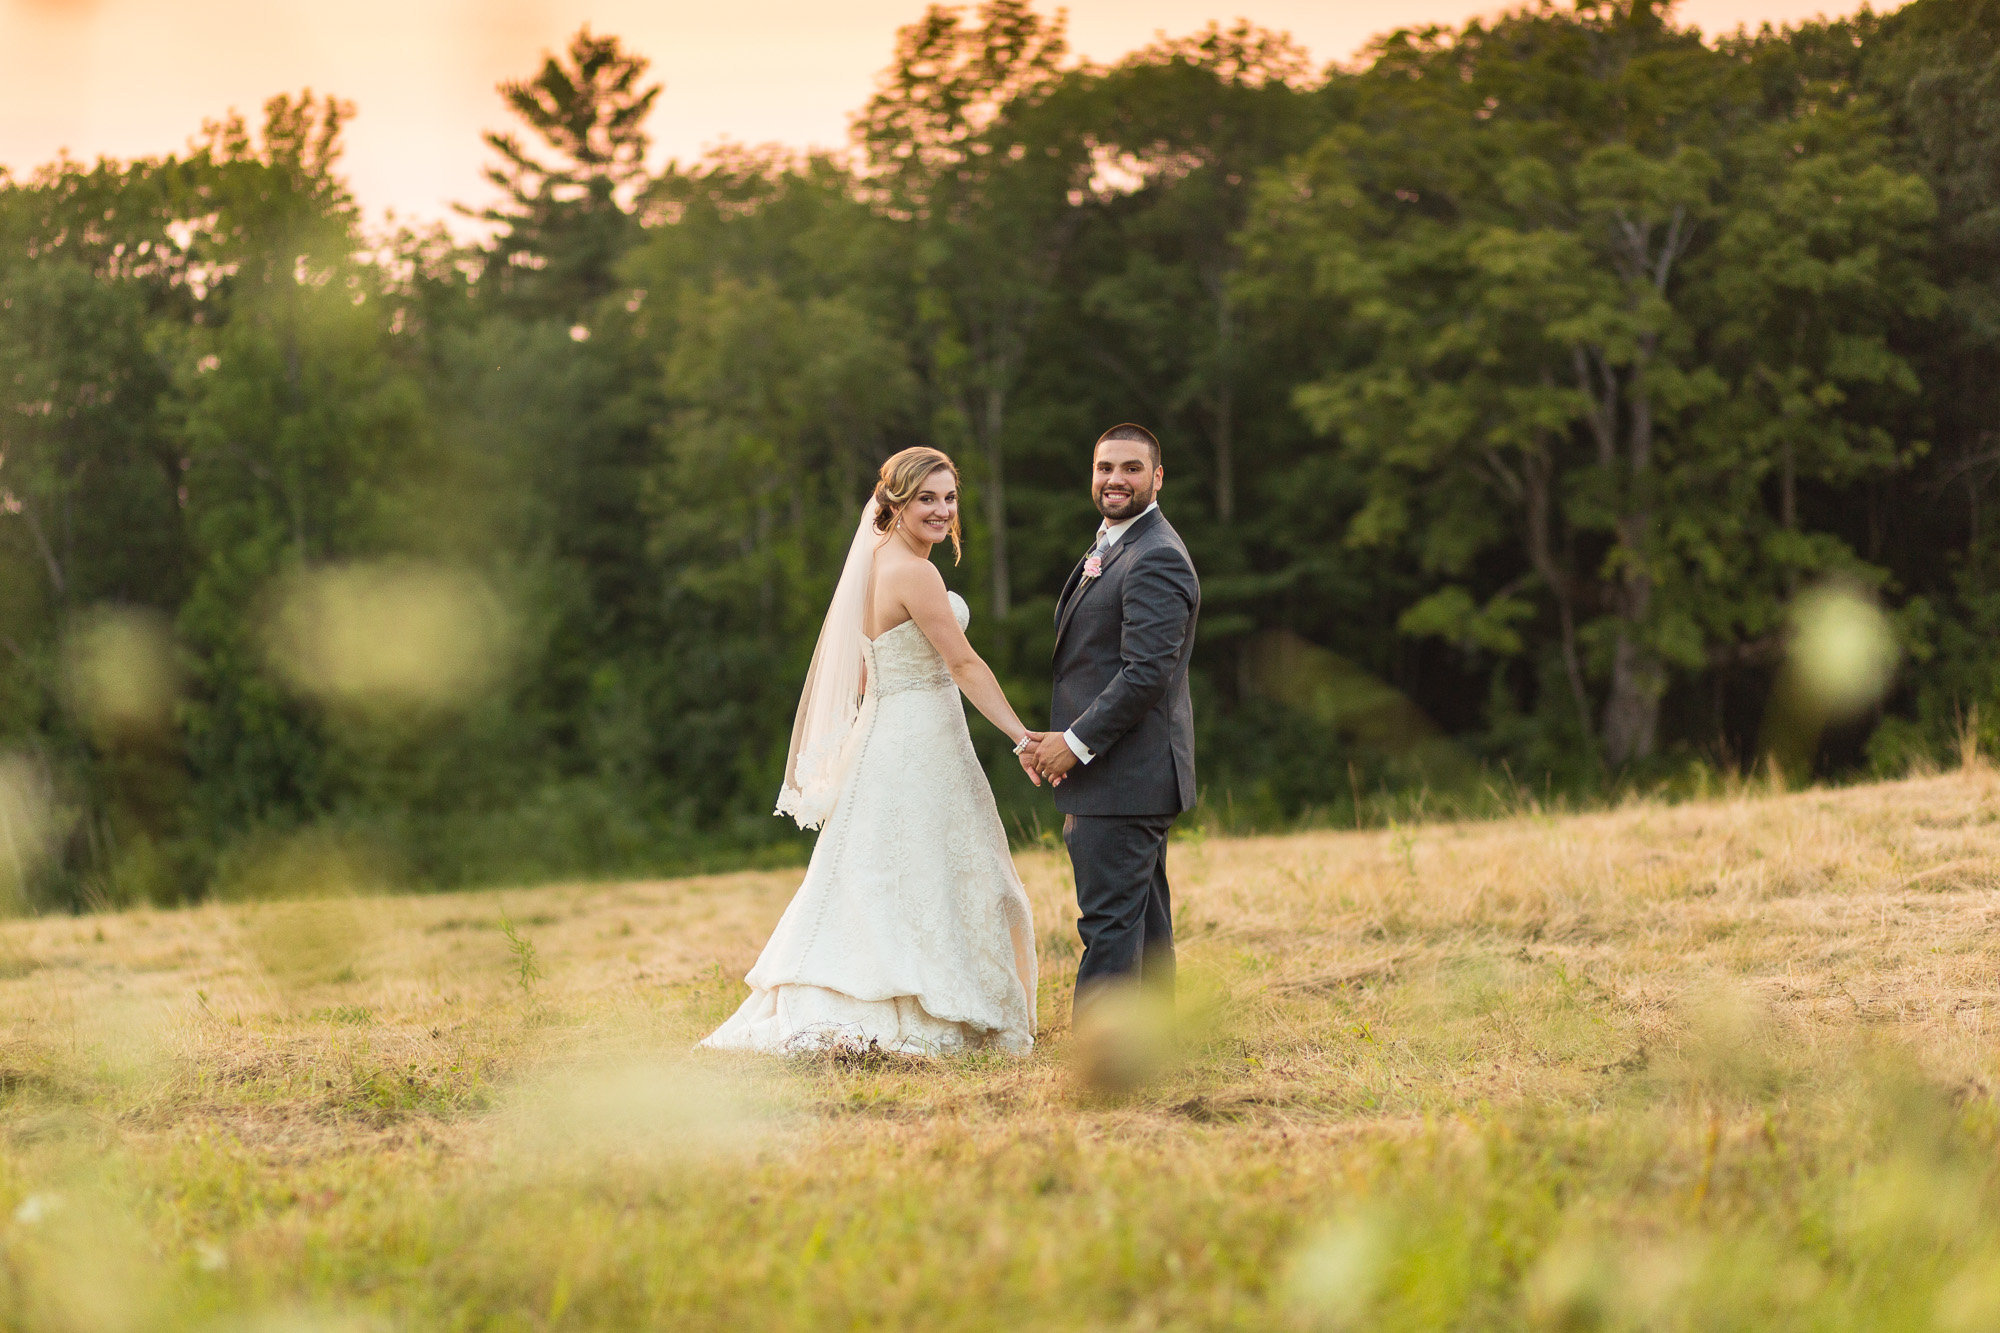 SarahAngel-Wedding-1070-lowres-Harrington-Farm-Wedding-Photographer